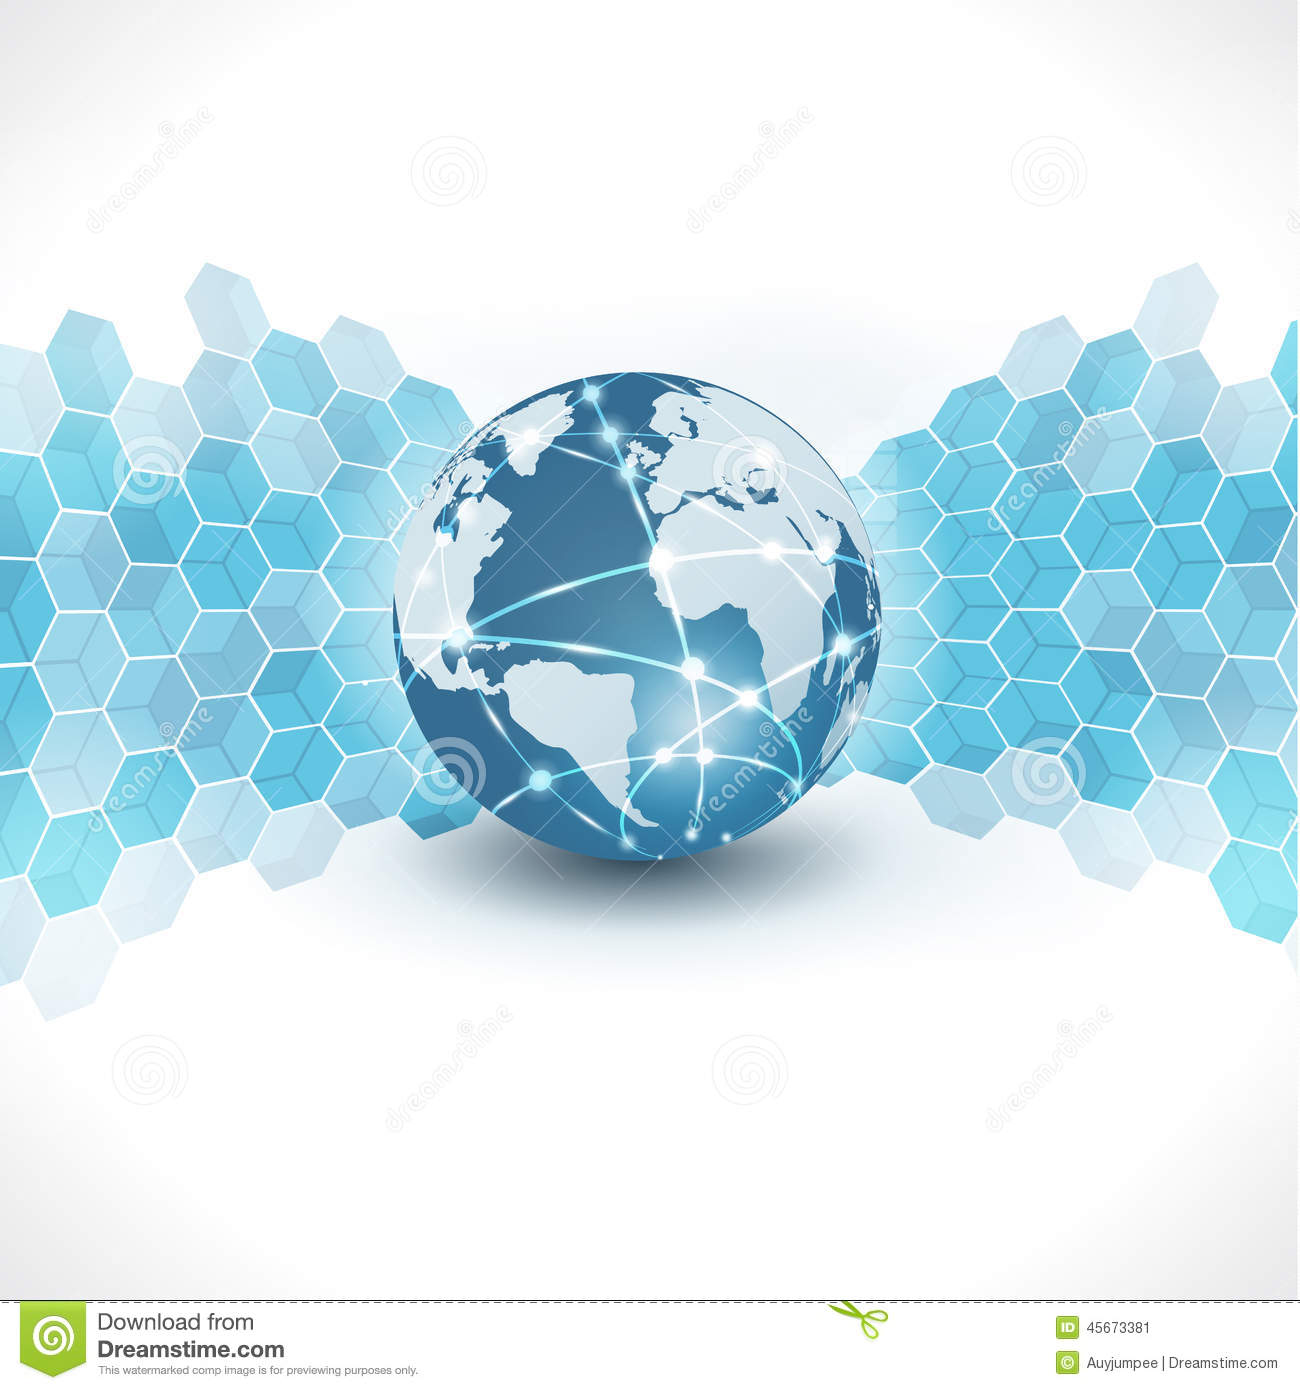 global tech business plan Resources for global entrepreneurs  start your own business plan » information technology business plan  to provide the hawai'i business community with quality brand-name information.